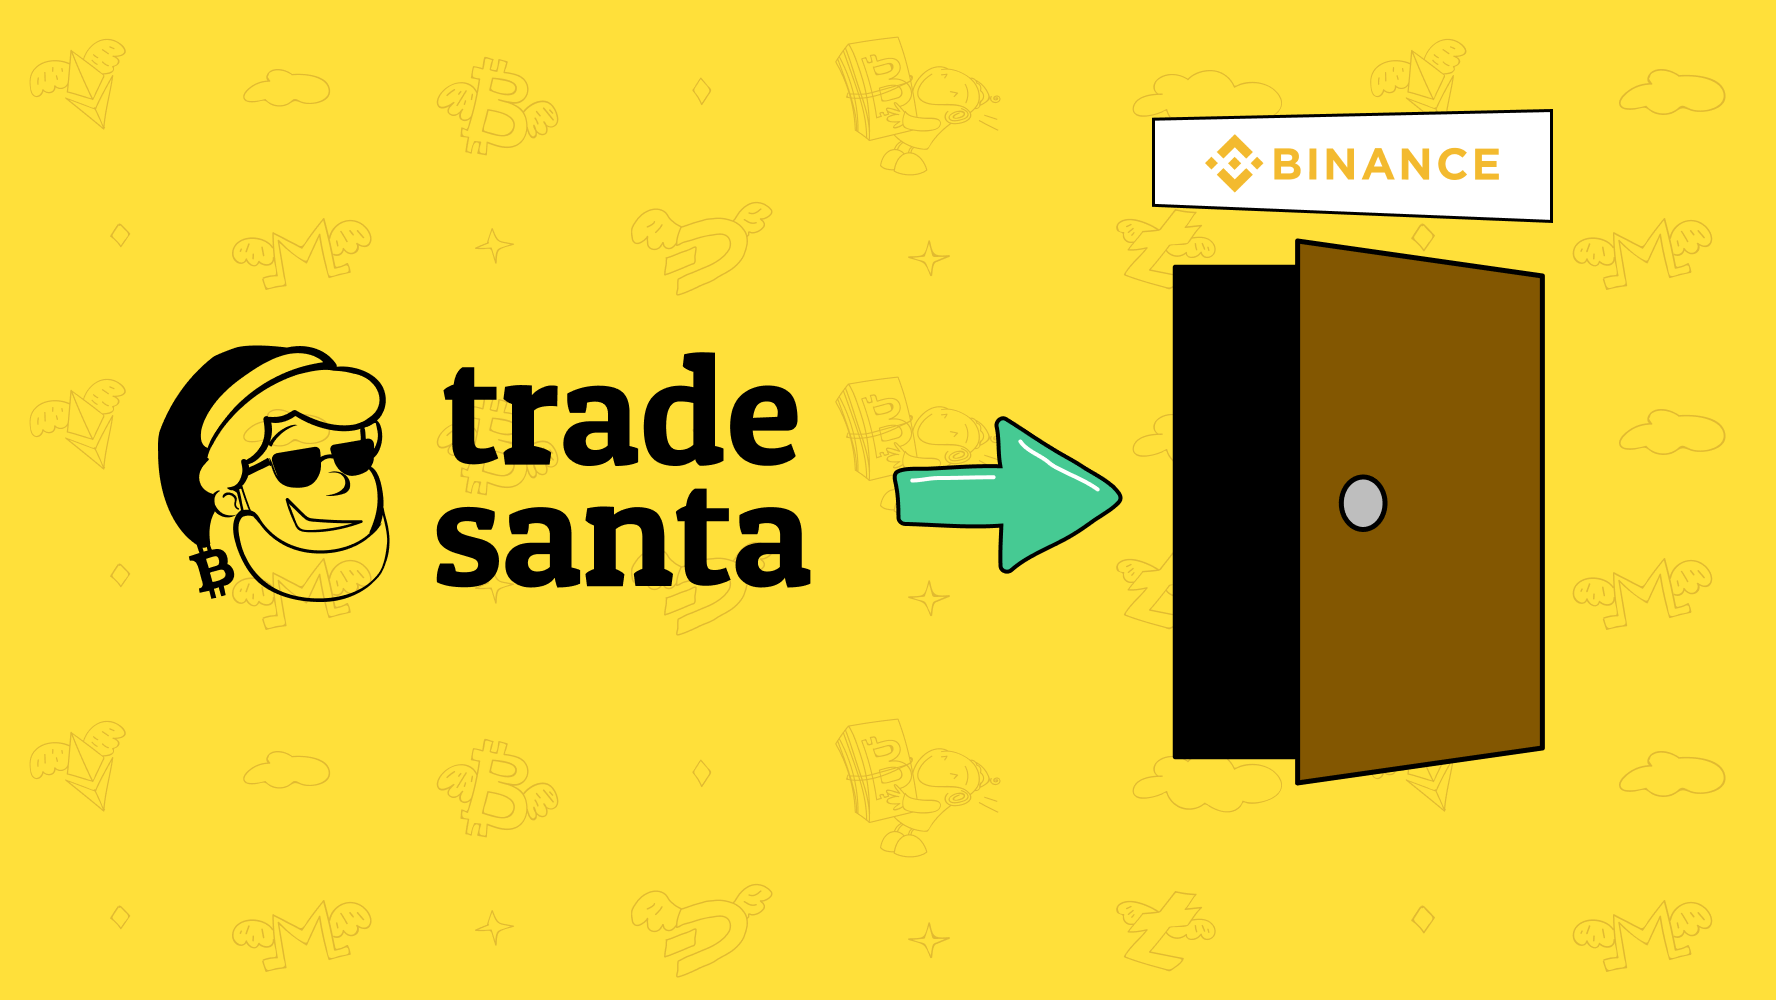 Crypto trading bot for Binance: How to create, set up and trade crypto